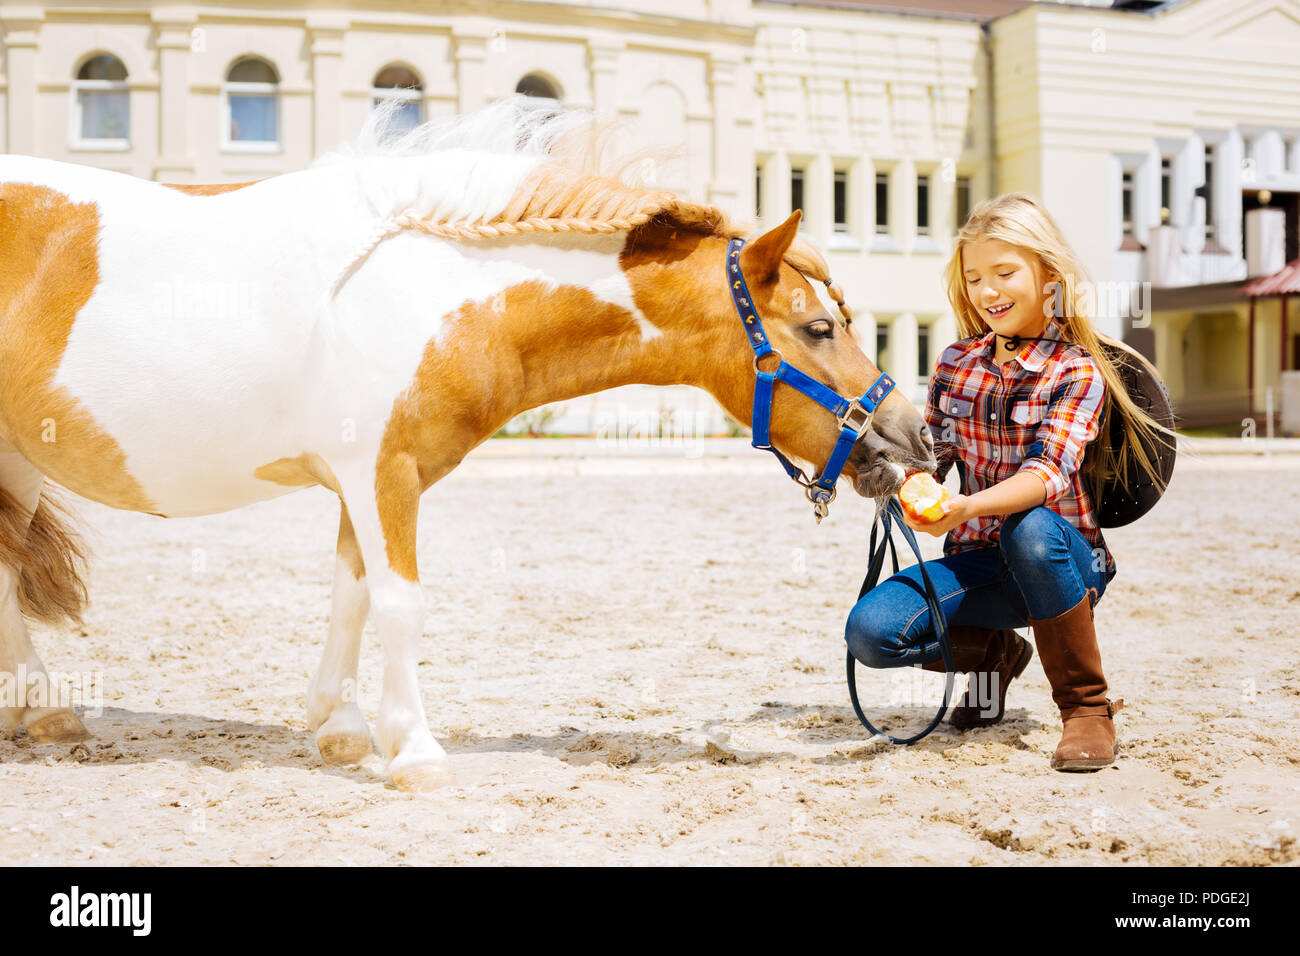 Amused schoolgirl spending her weekend near stable with horse - Stock Image